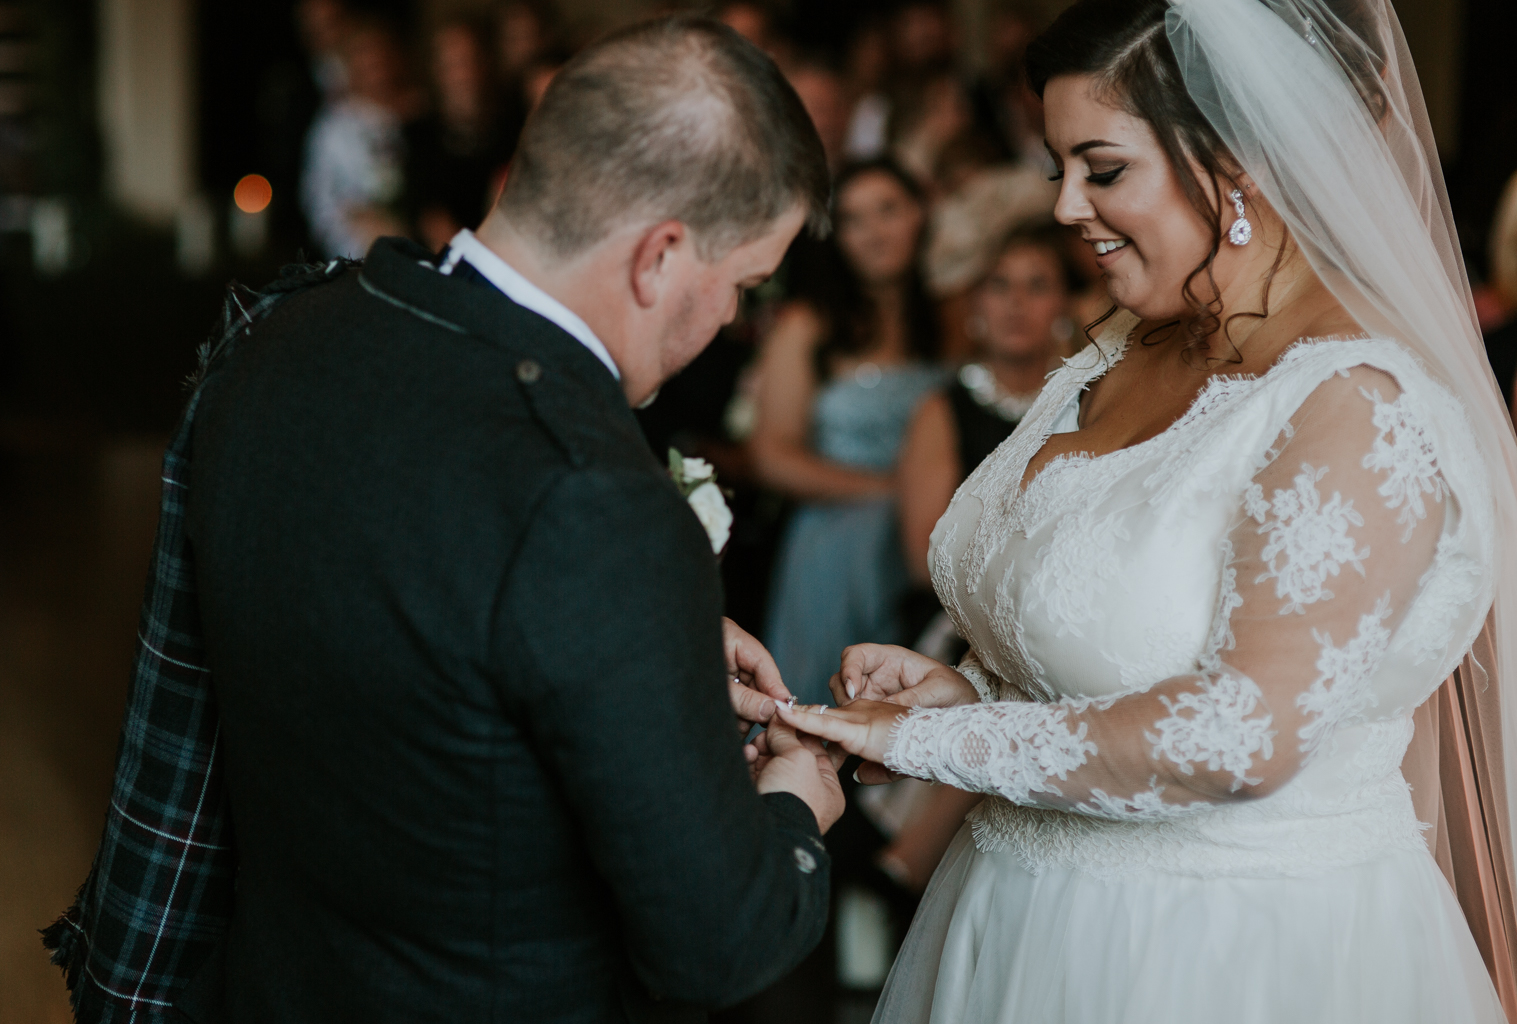 Groom putting the wedding ring on bride's finger